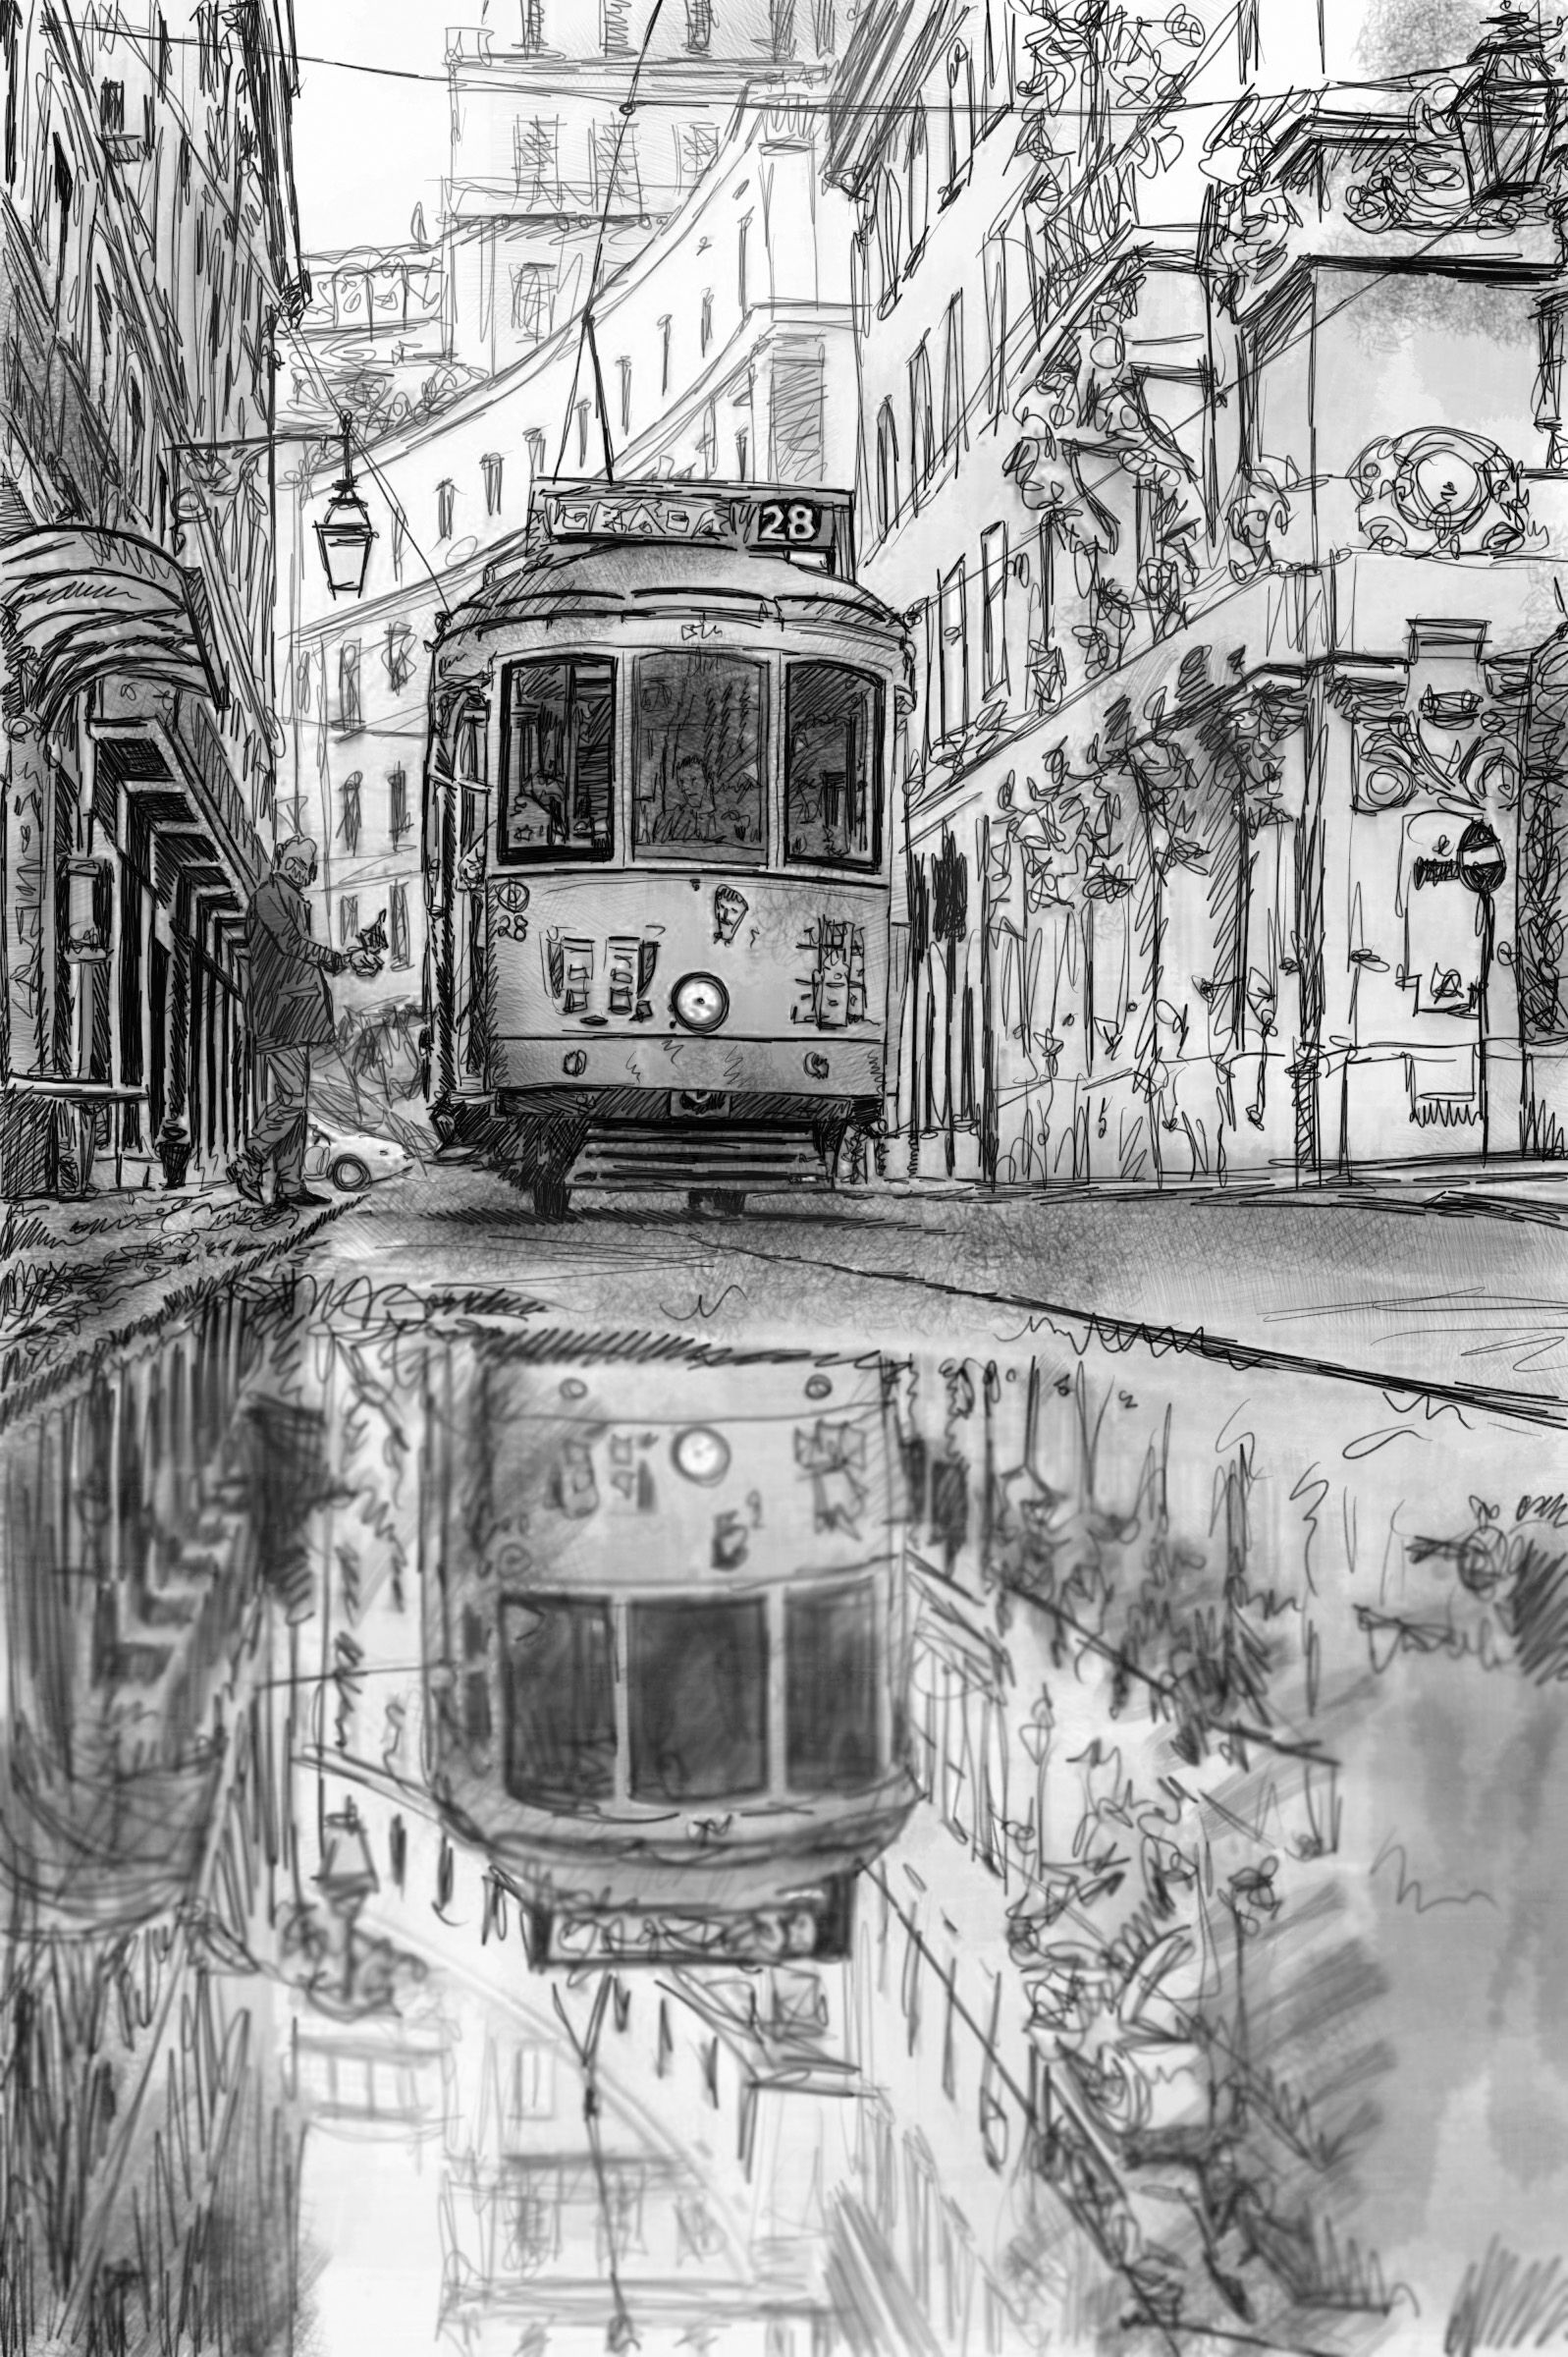 Pin by Ying-Te Lien on Sketch & Illustration | Pinterest | Sketches ...